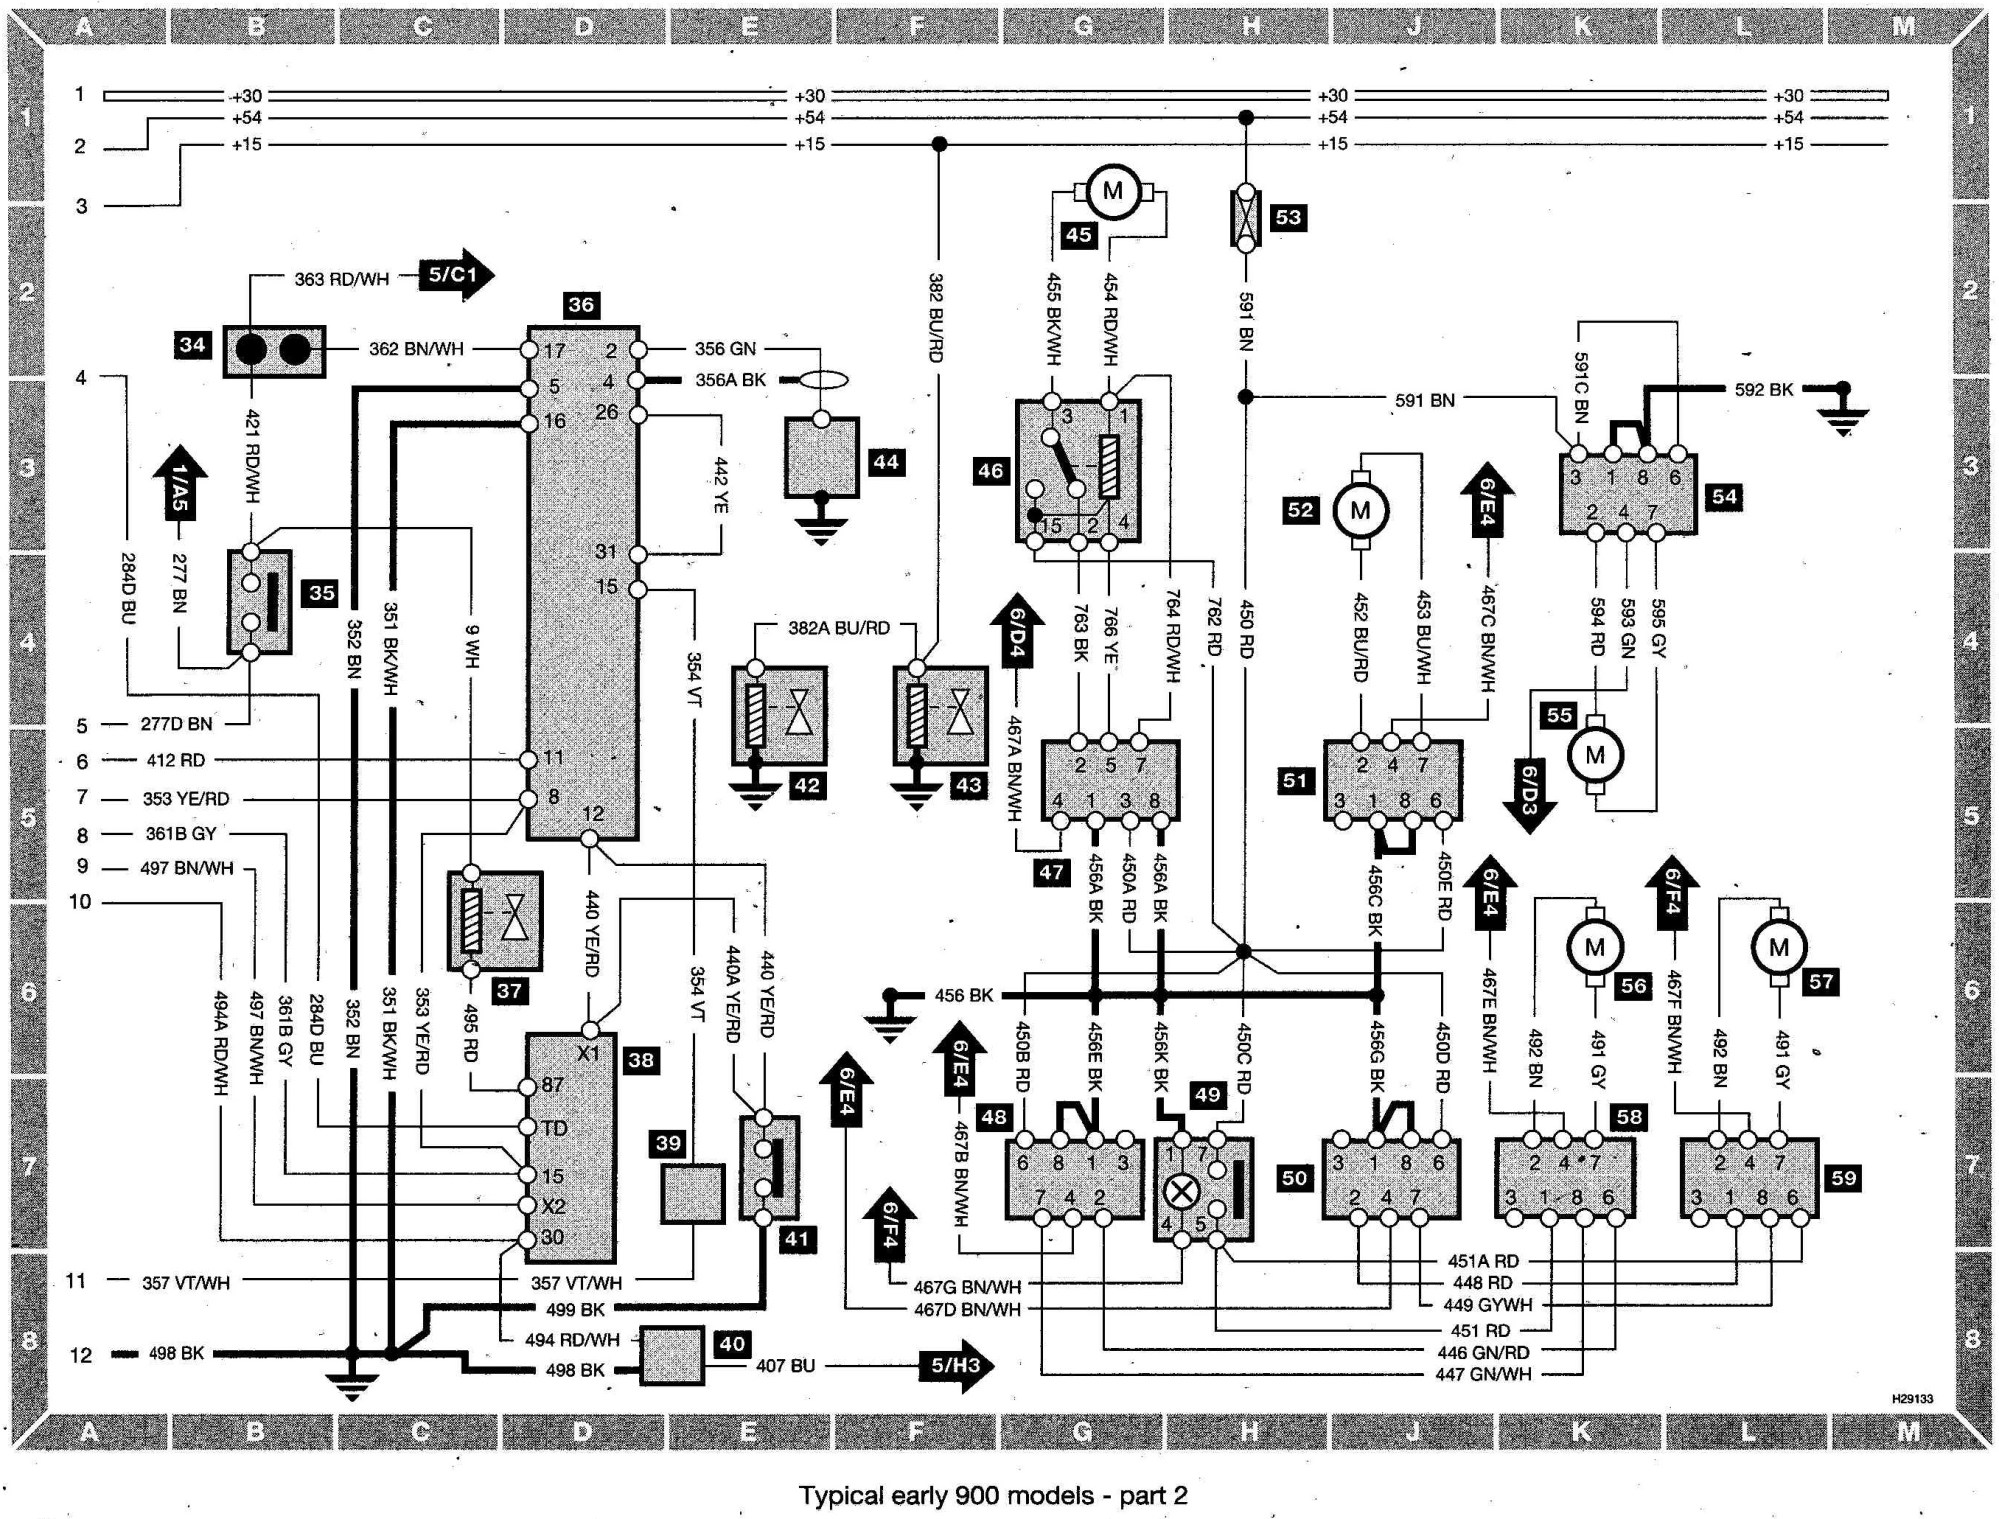 hight resolution of 1998 saab 900 wiring diagram wiring diagram site 1998 saab 900 convertible wiring